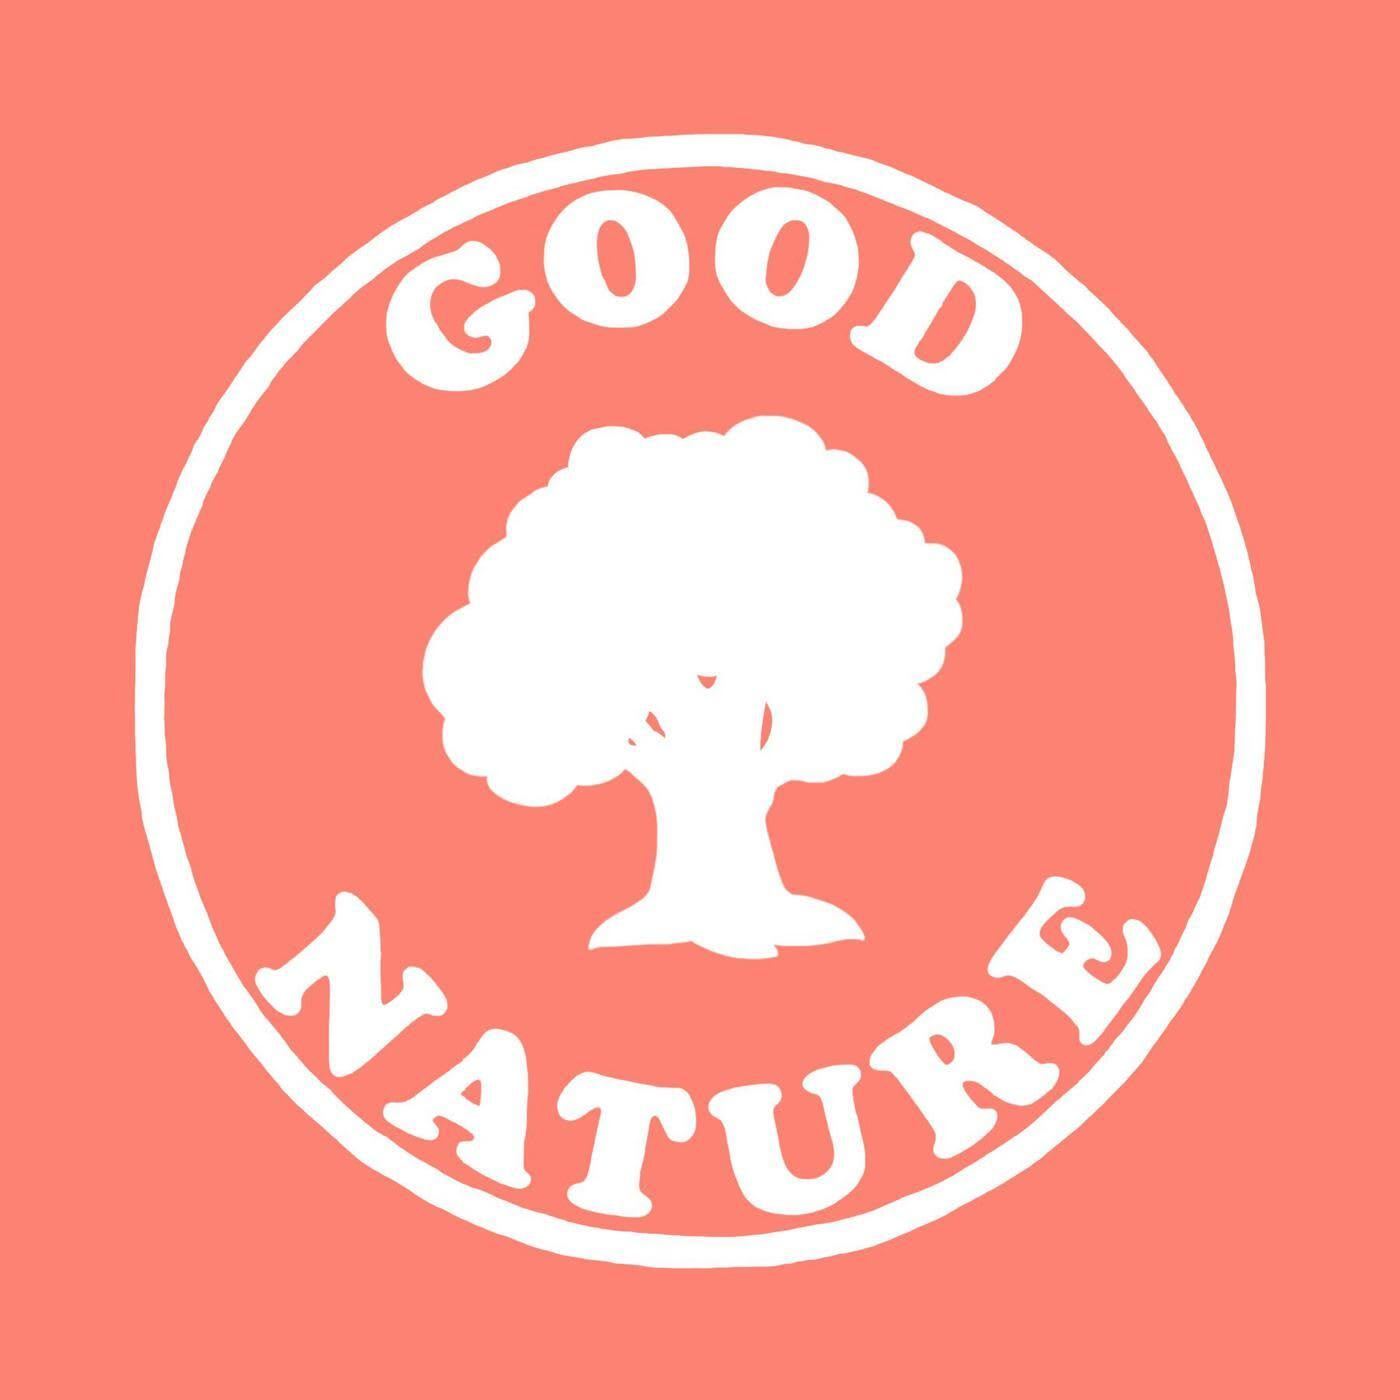 GOOD NATURE podcast poster hosted by Tony Hartman, podcast, listening, audio, learning, guests, experience